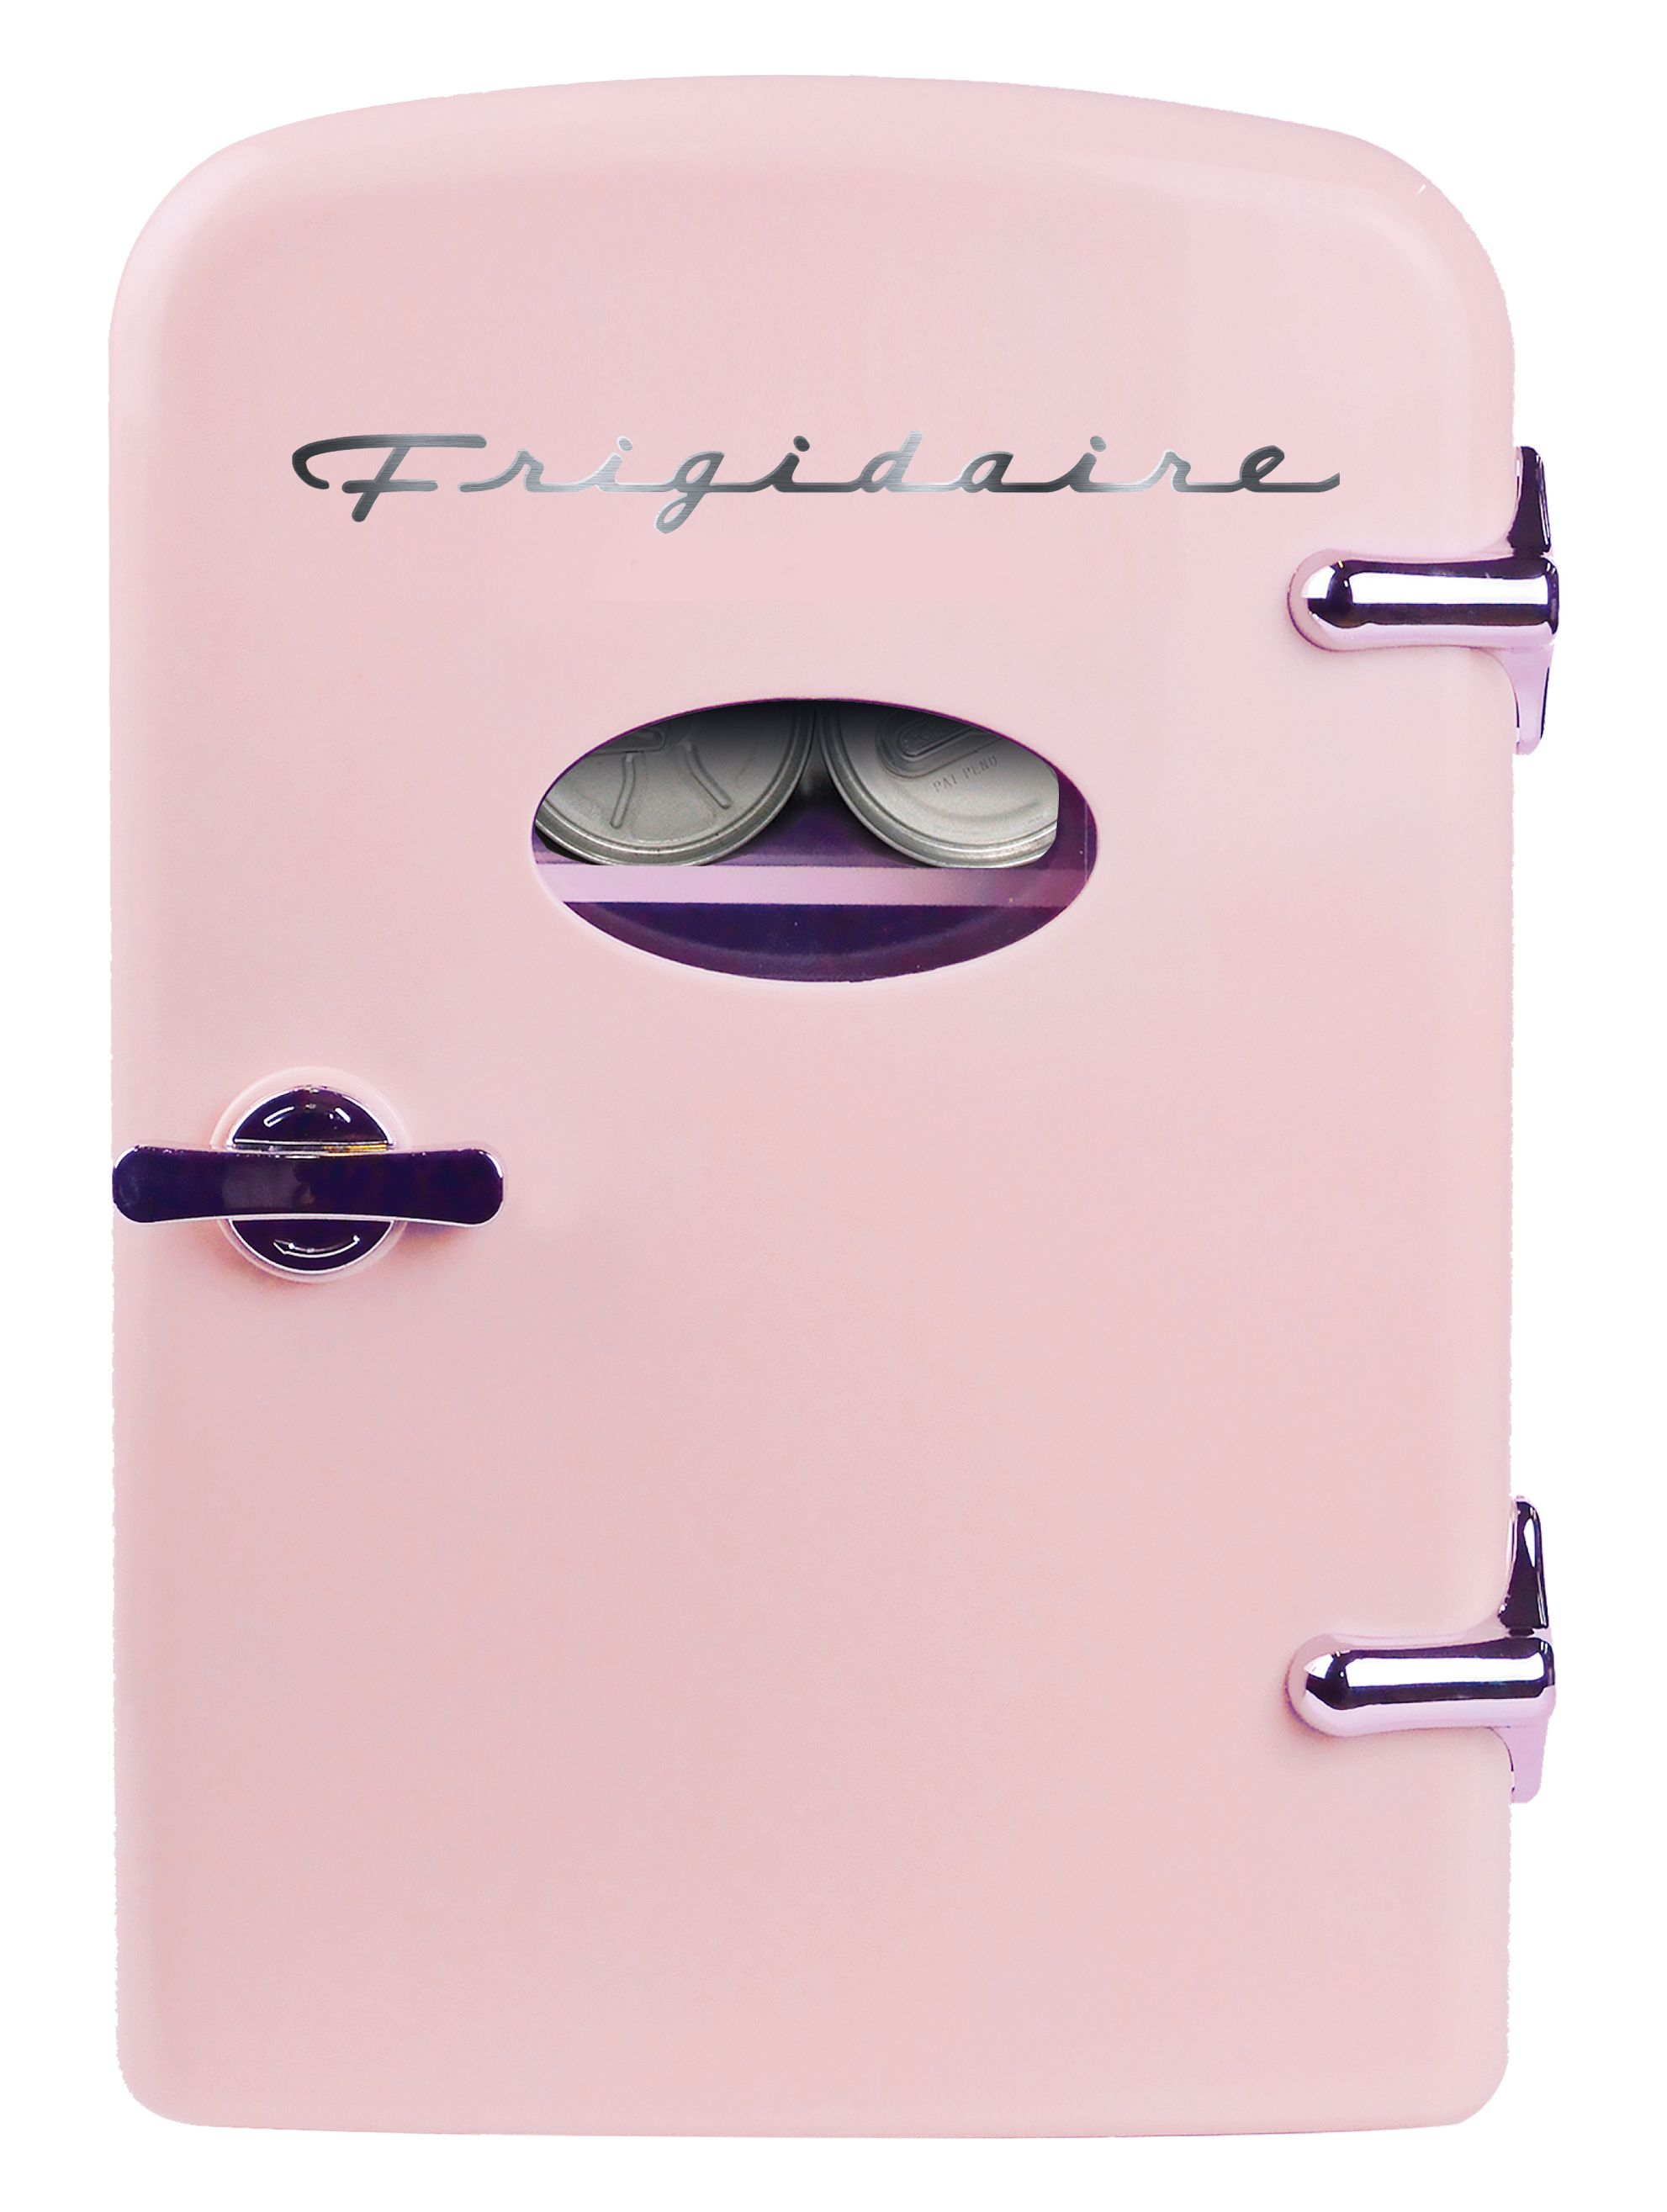 Frigidaire Portable Retro 6 Can Mini Fridge Efmis129 Pink Walmart Com In 2020 Pink Mini Fridge Mini Fridge Pink Fridge